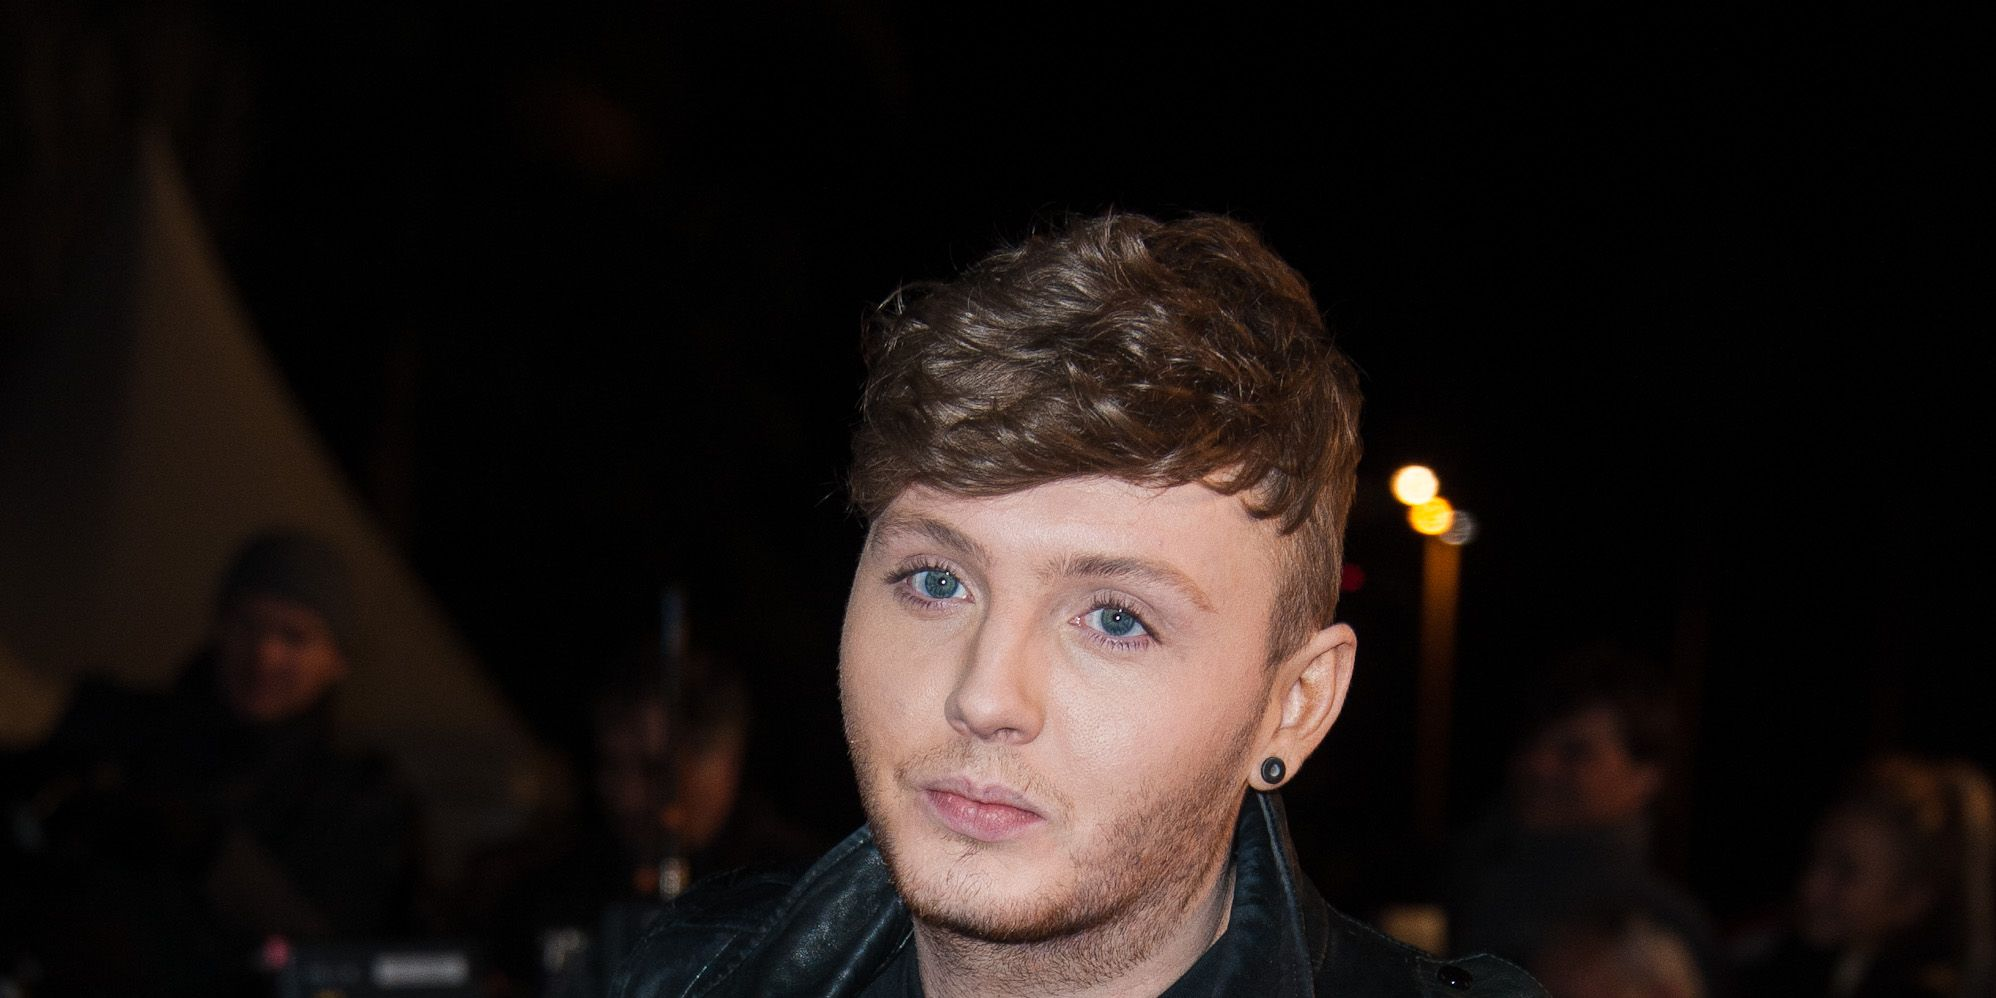 CANNES, FRANCE - DECEMBER 14: James Arthur attends the 15th NRJ Music Awards at Palais des Festivals on December 14, 2013 in Cannes, France.